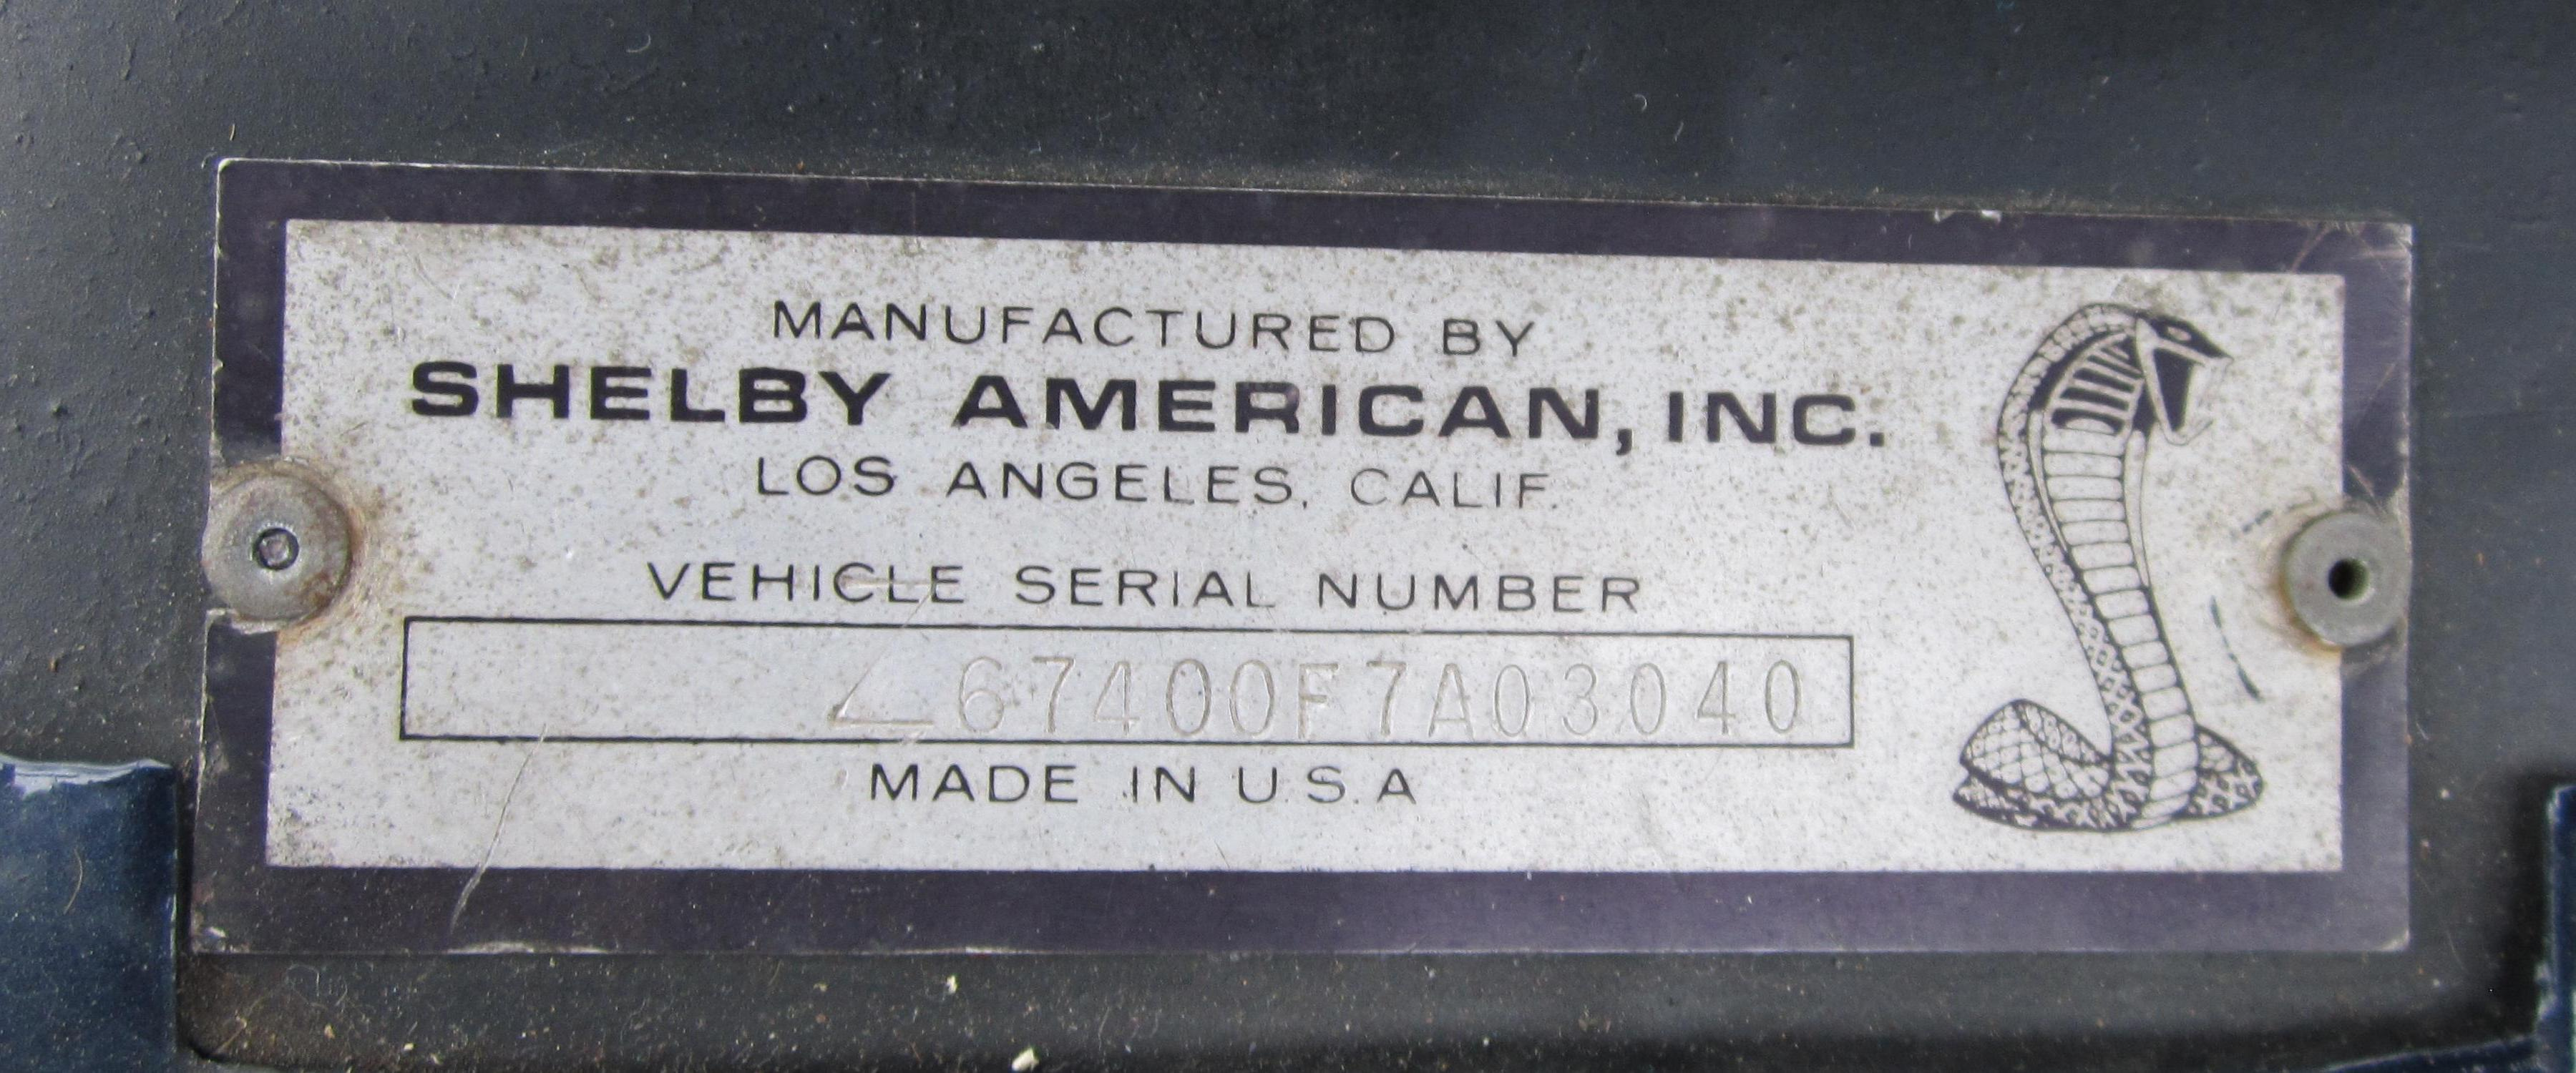 Original shelby american vin tag riveted onto the body next to the left side fender